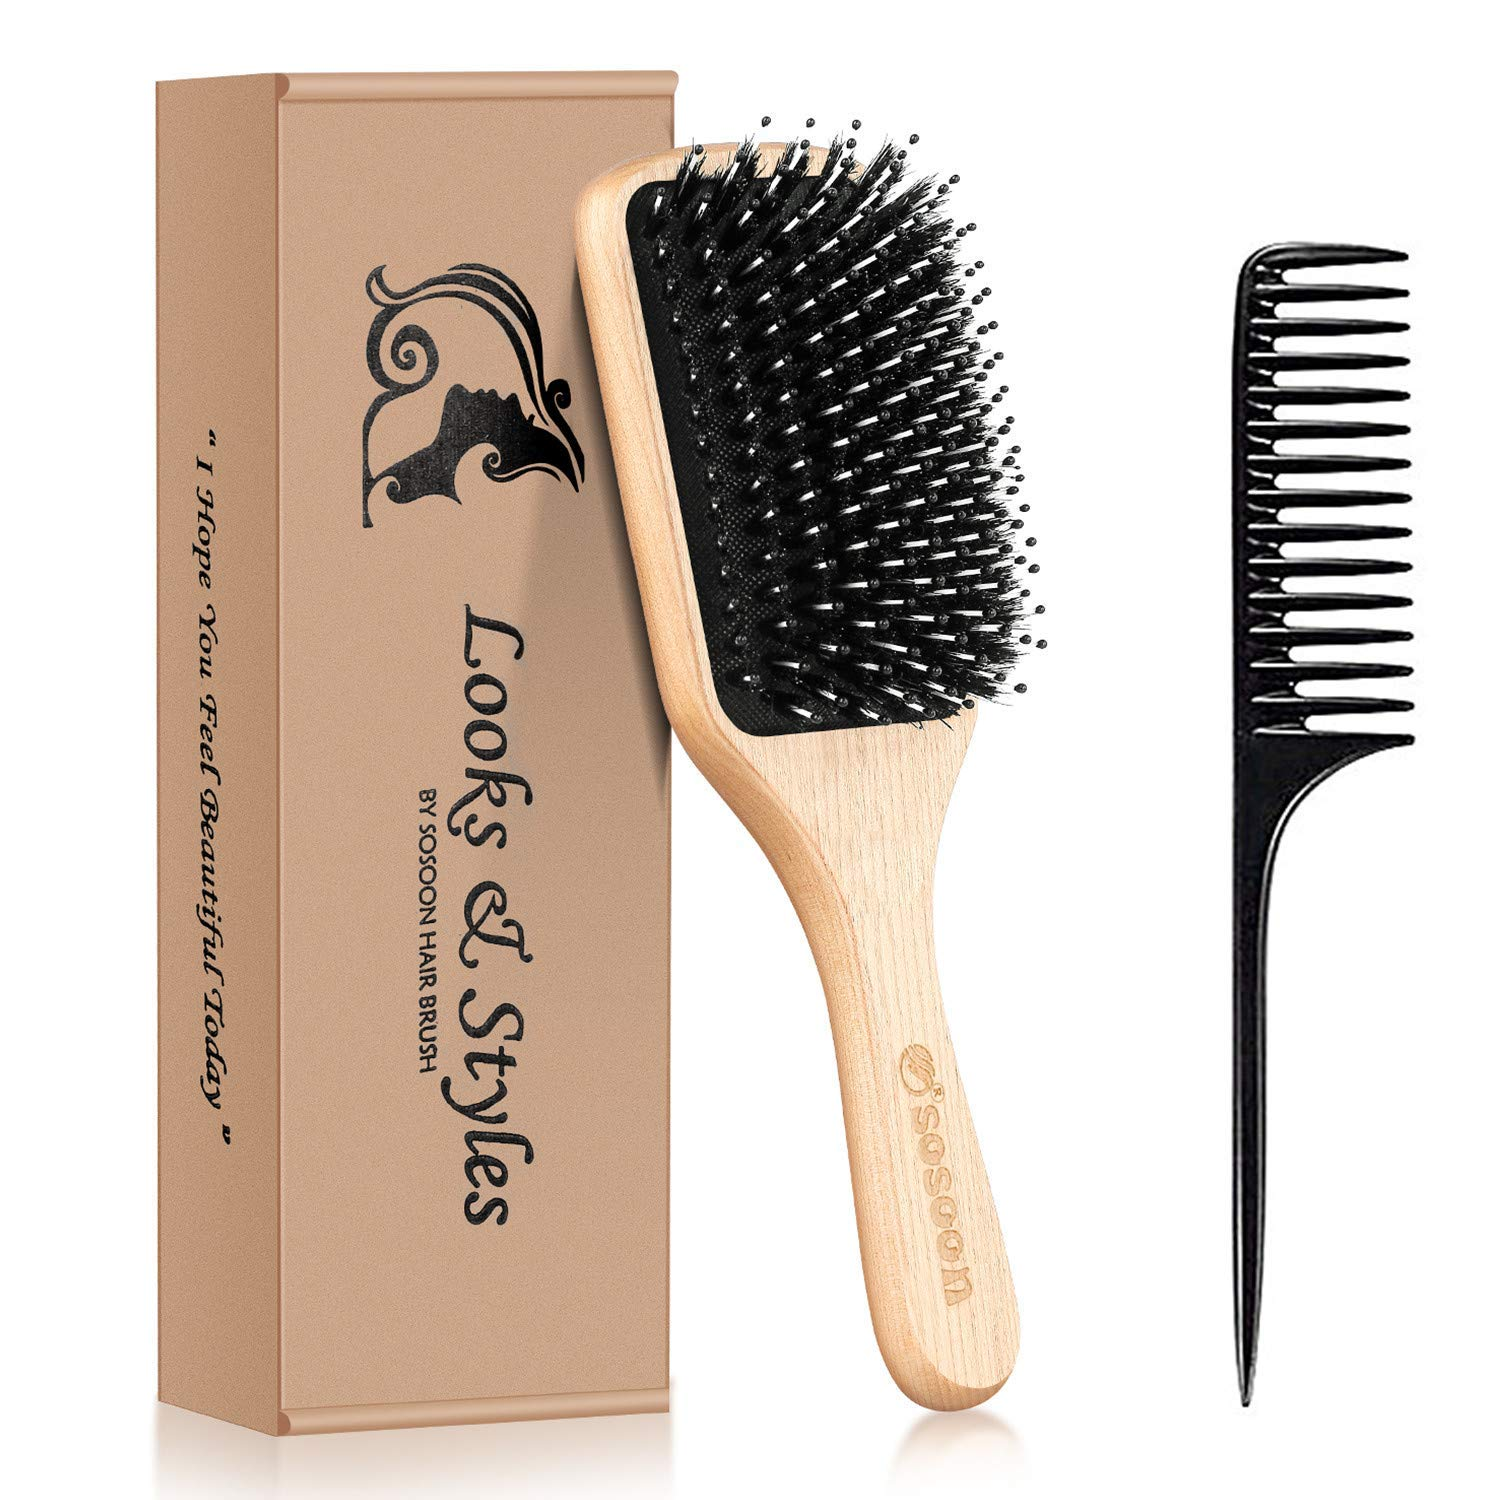 Amazon Com Hair Brush Sosoon Boar Bristle Paddle Hairbrush For Long Short Thick Thin Curly Straight Wavy Dry Hair For Men Women Kids No More Tangle Giftbox Tail Comb Included